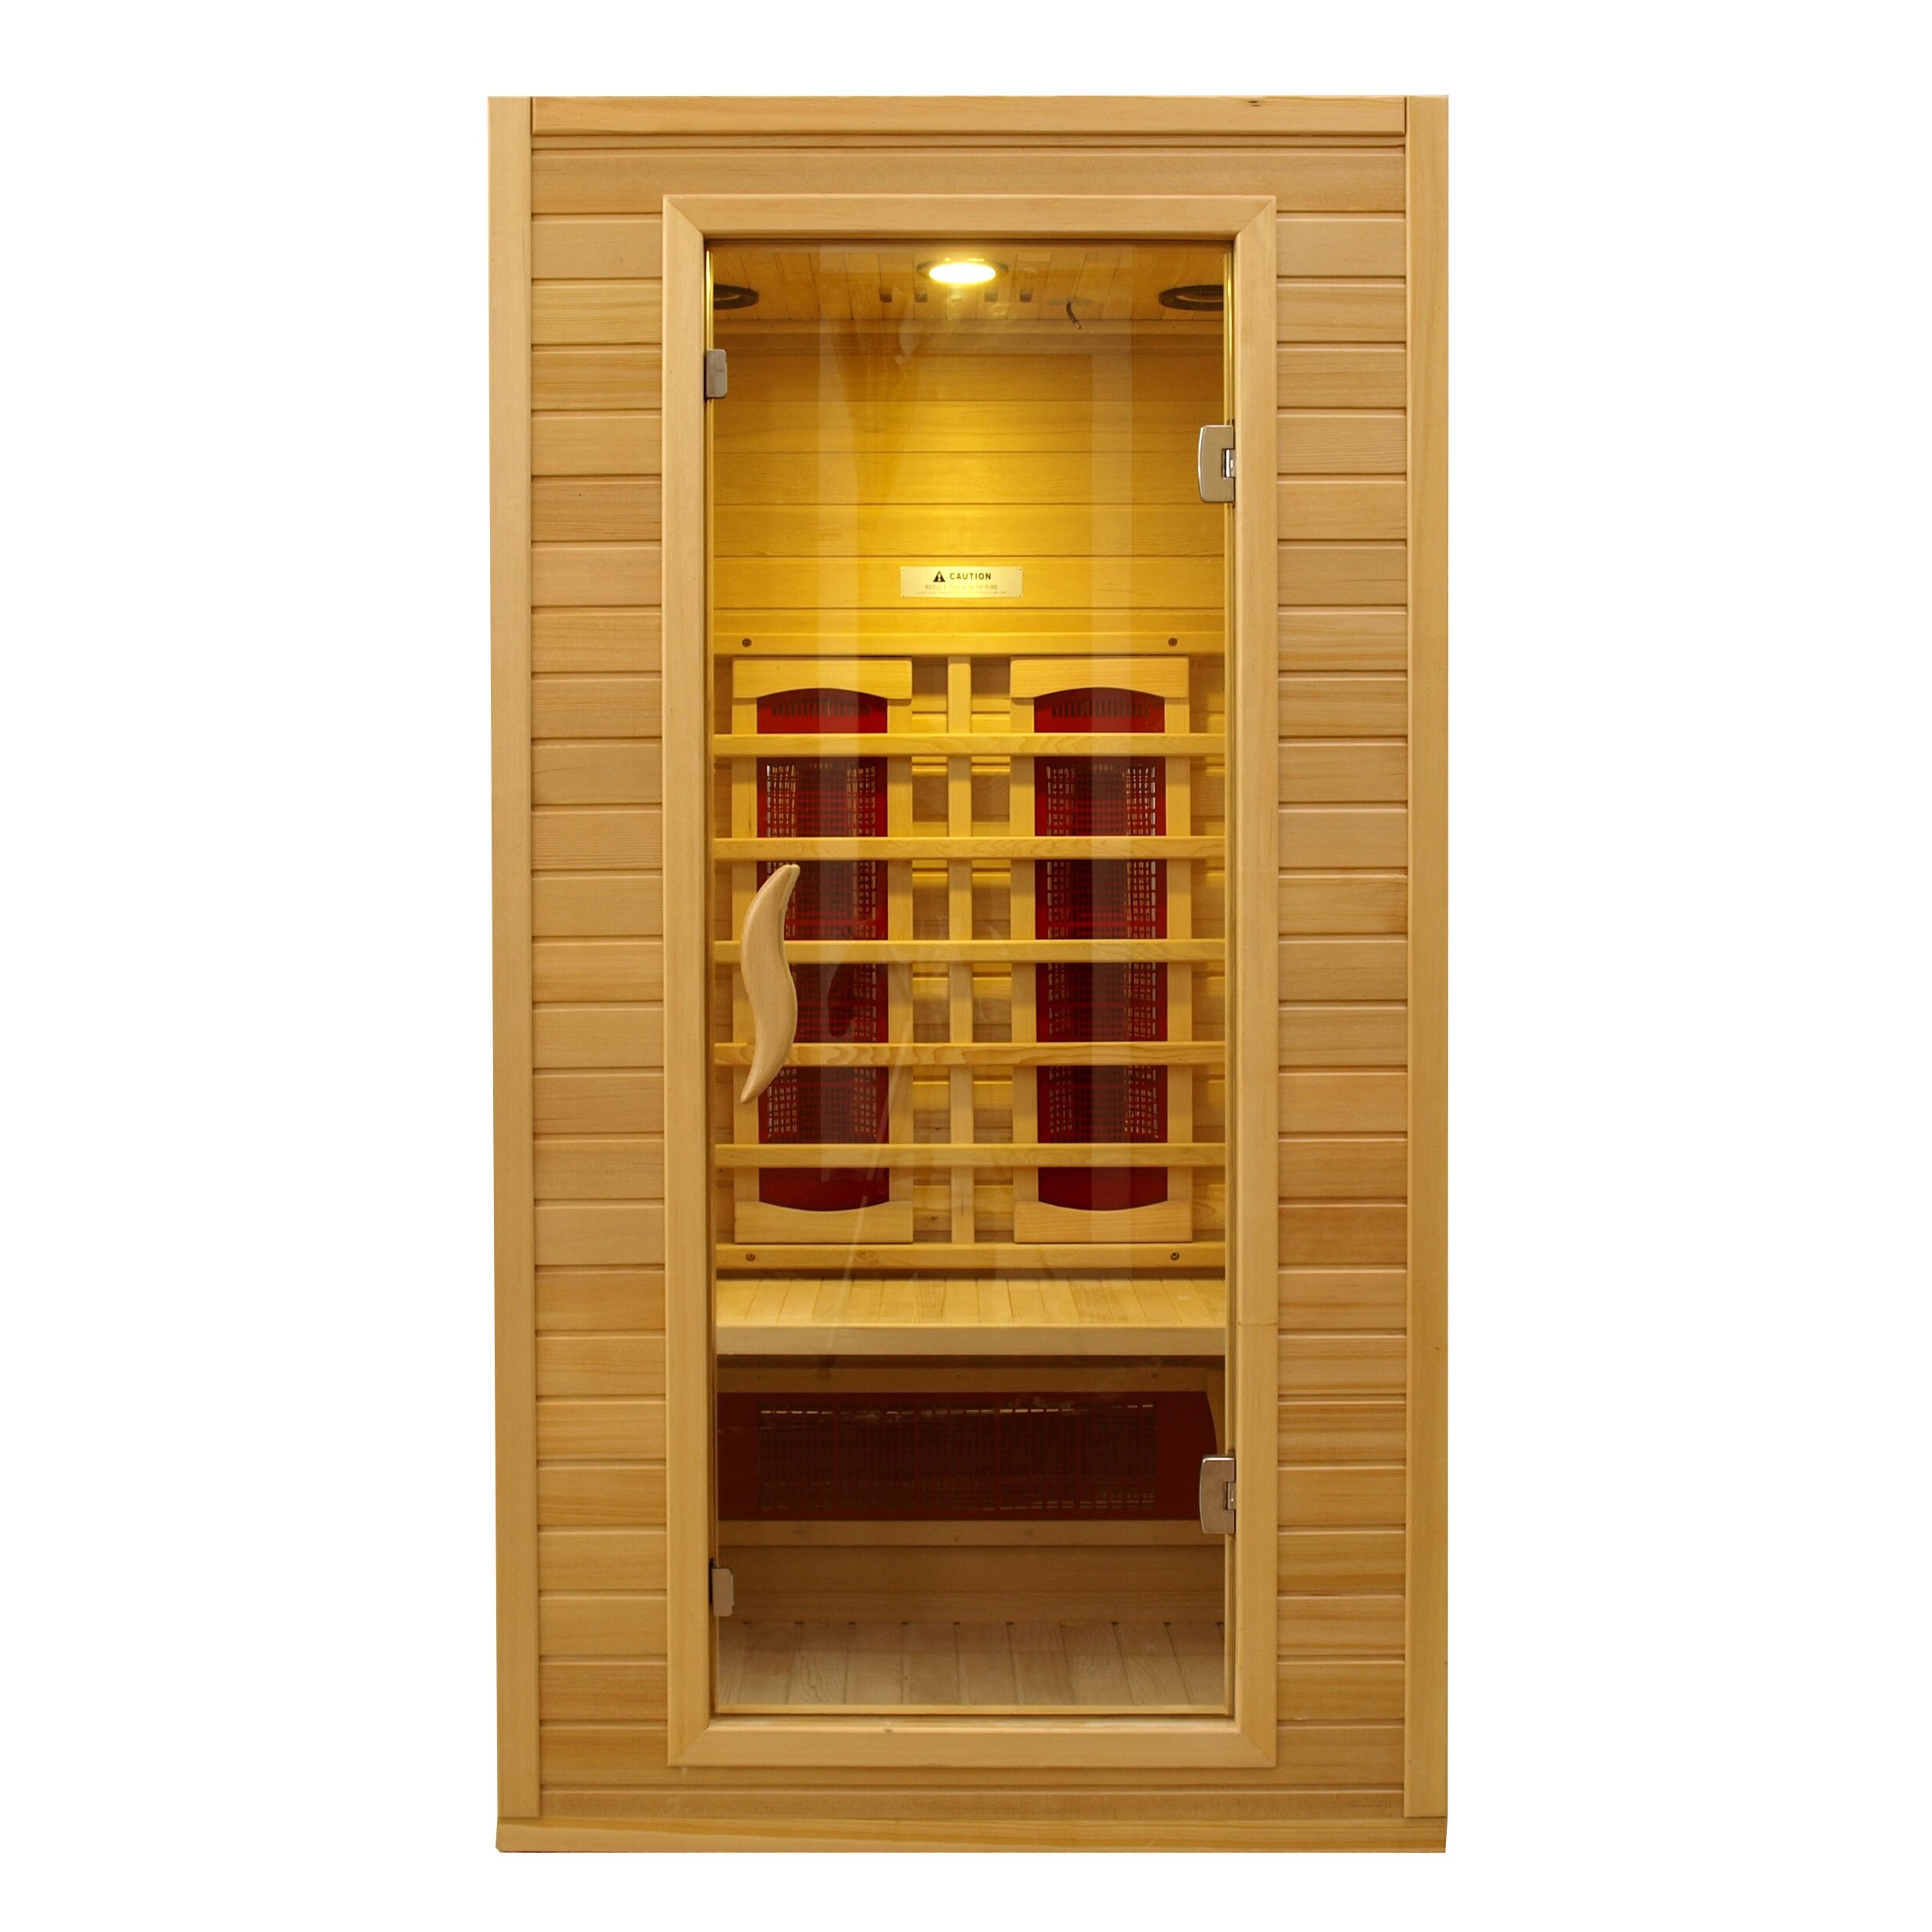 dynamic infrared 2 person ceramic far infrared sauna